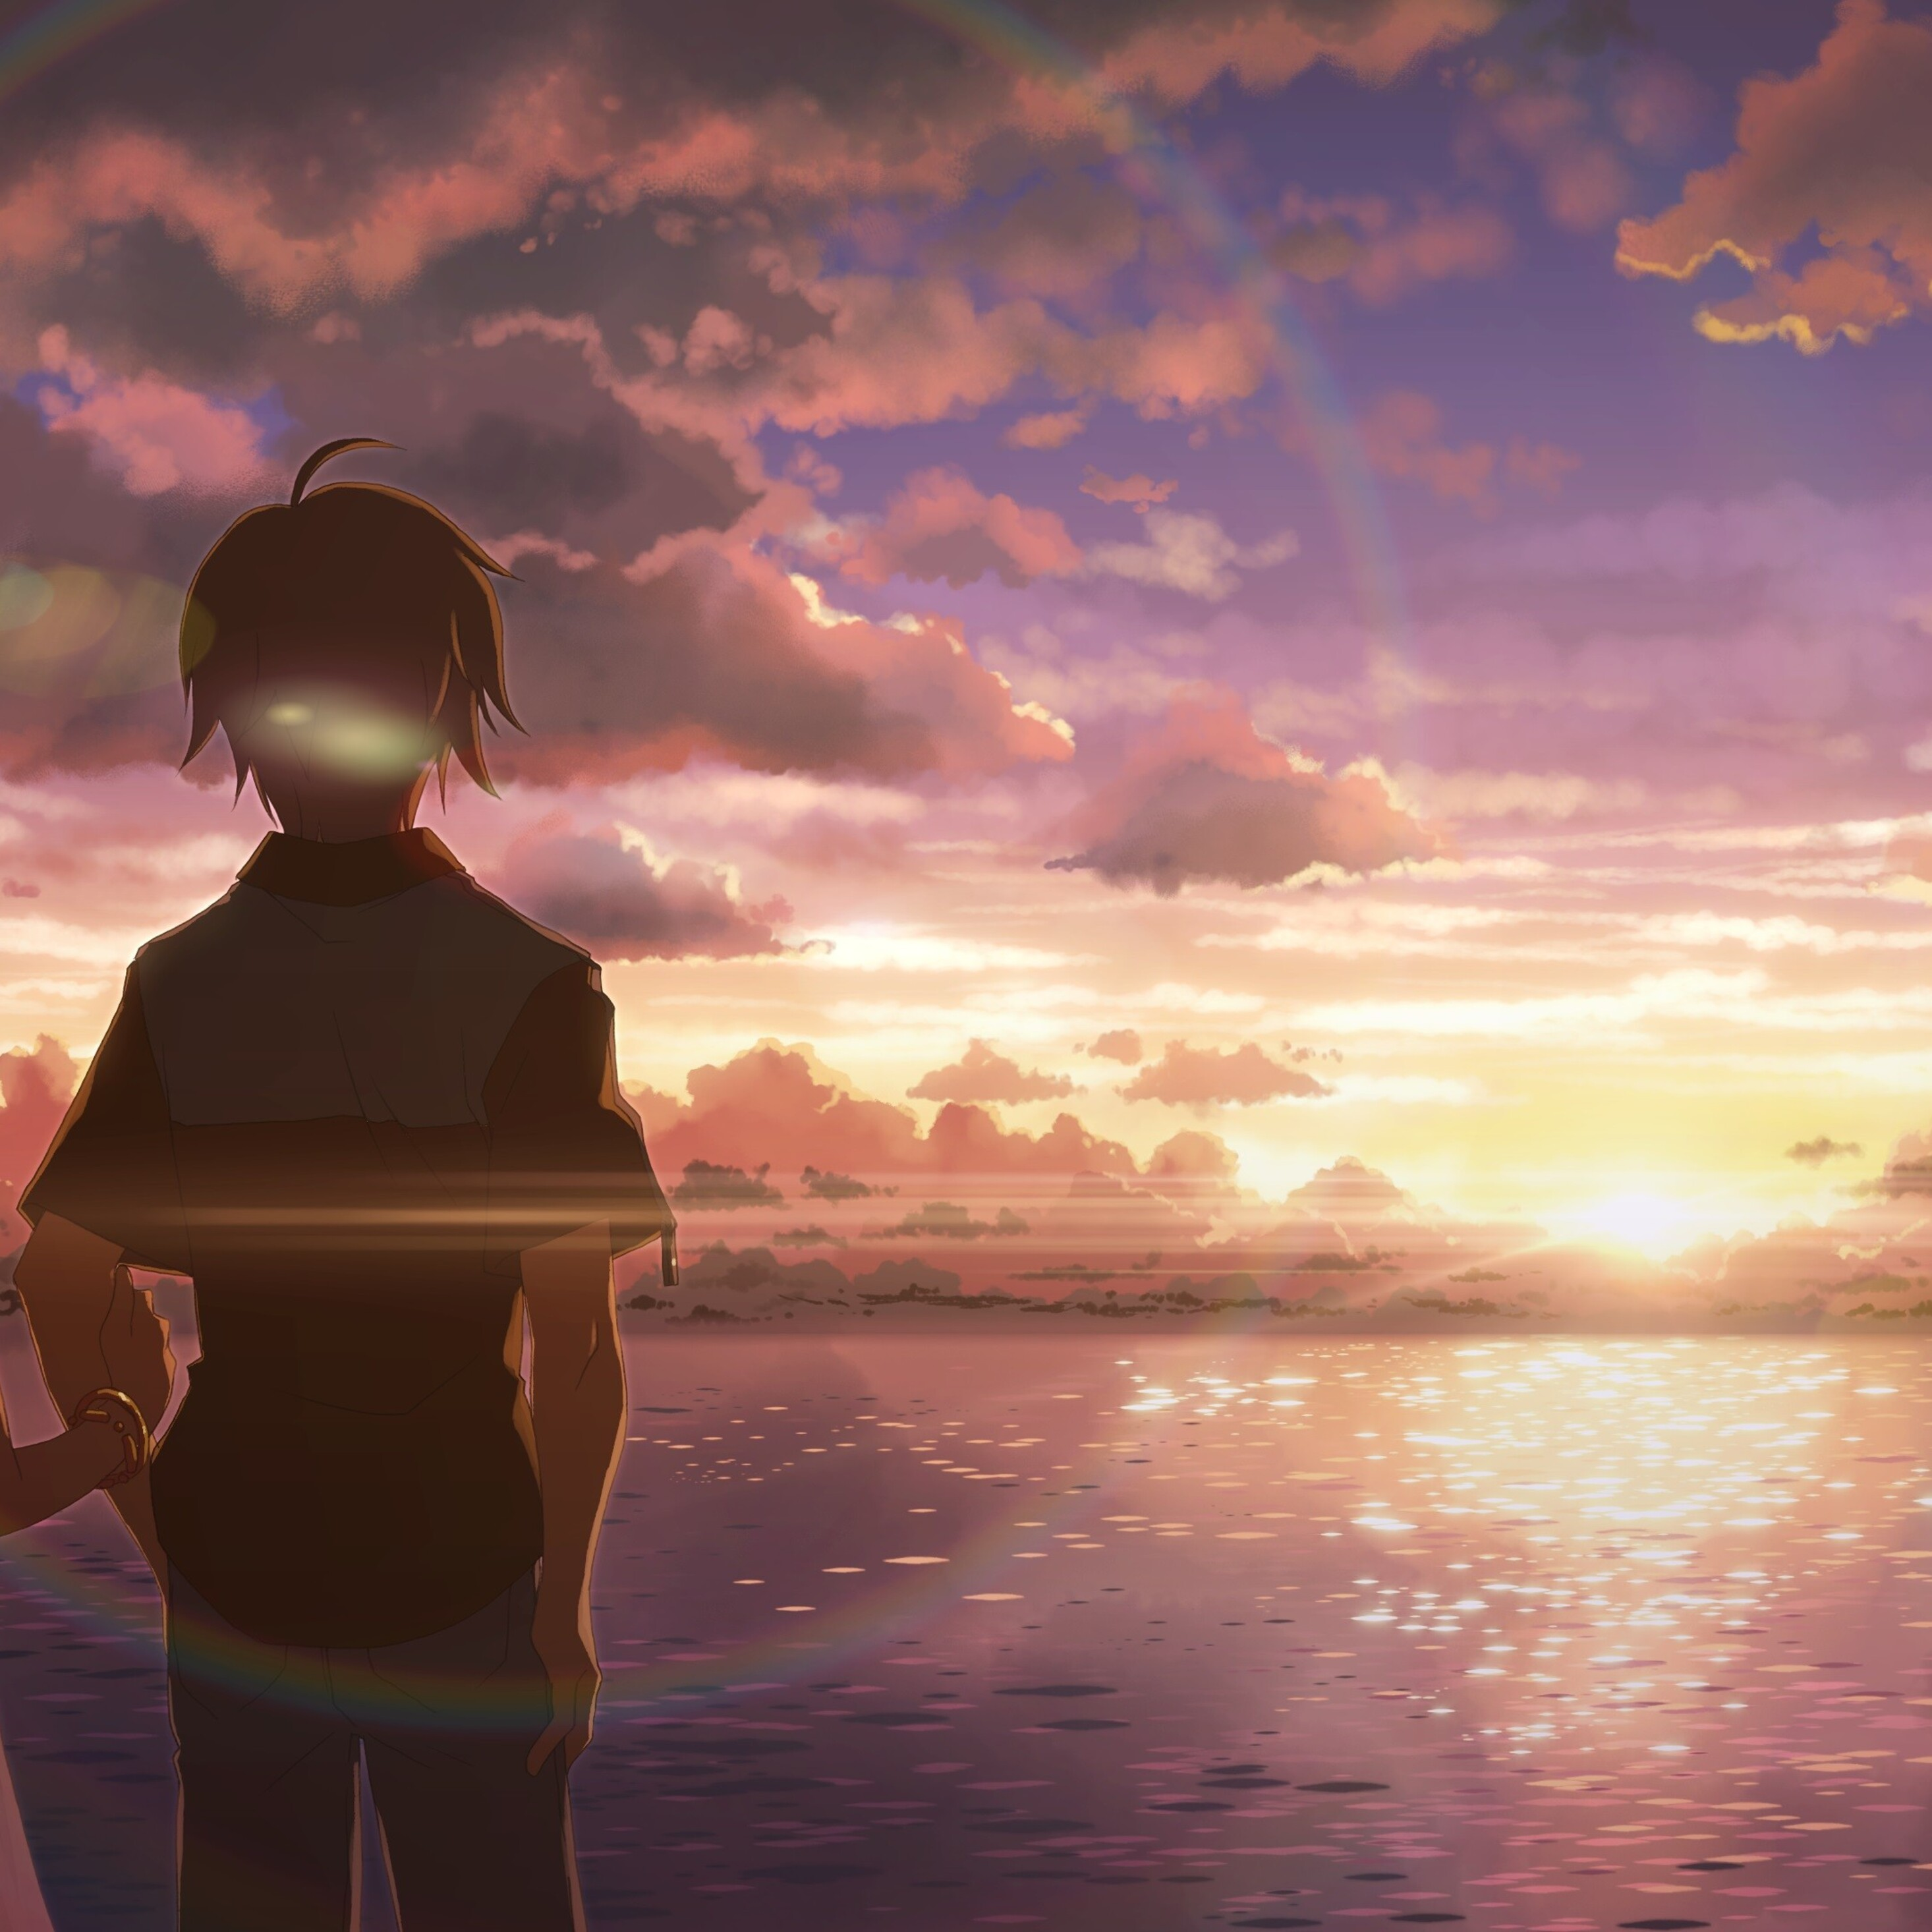 2932x2932 anime boy and girl alone ipad pro retina display - Anime girl picture download ...